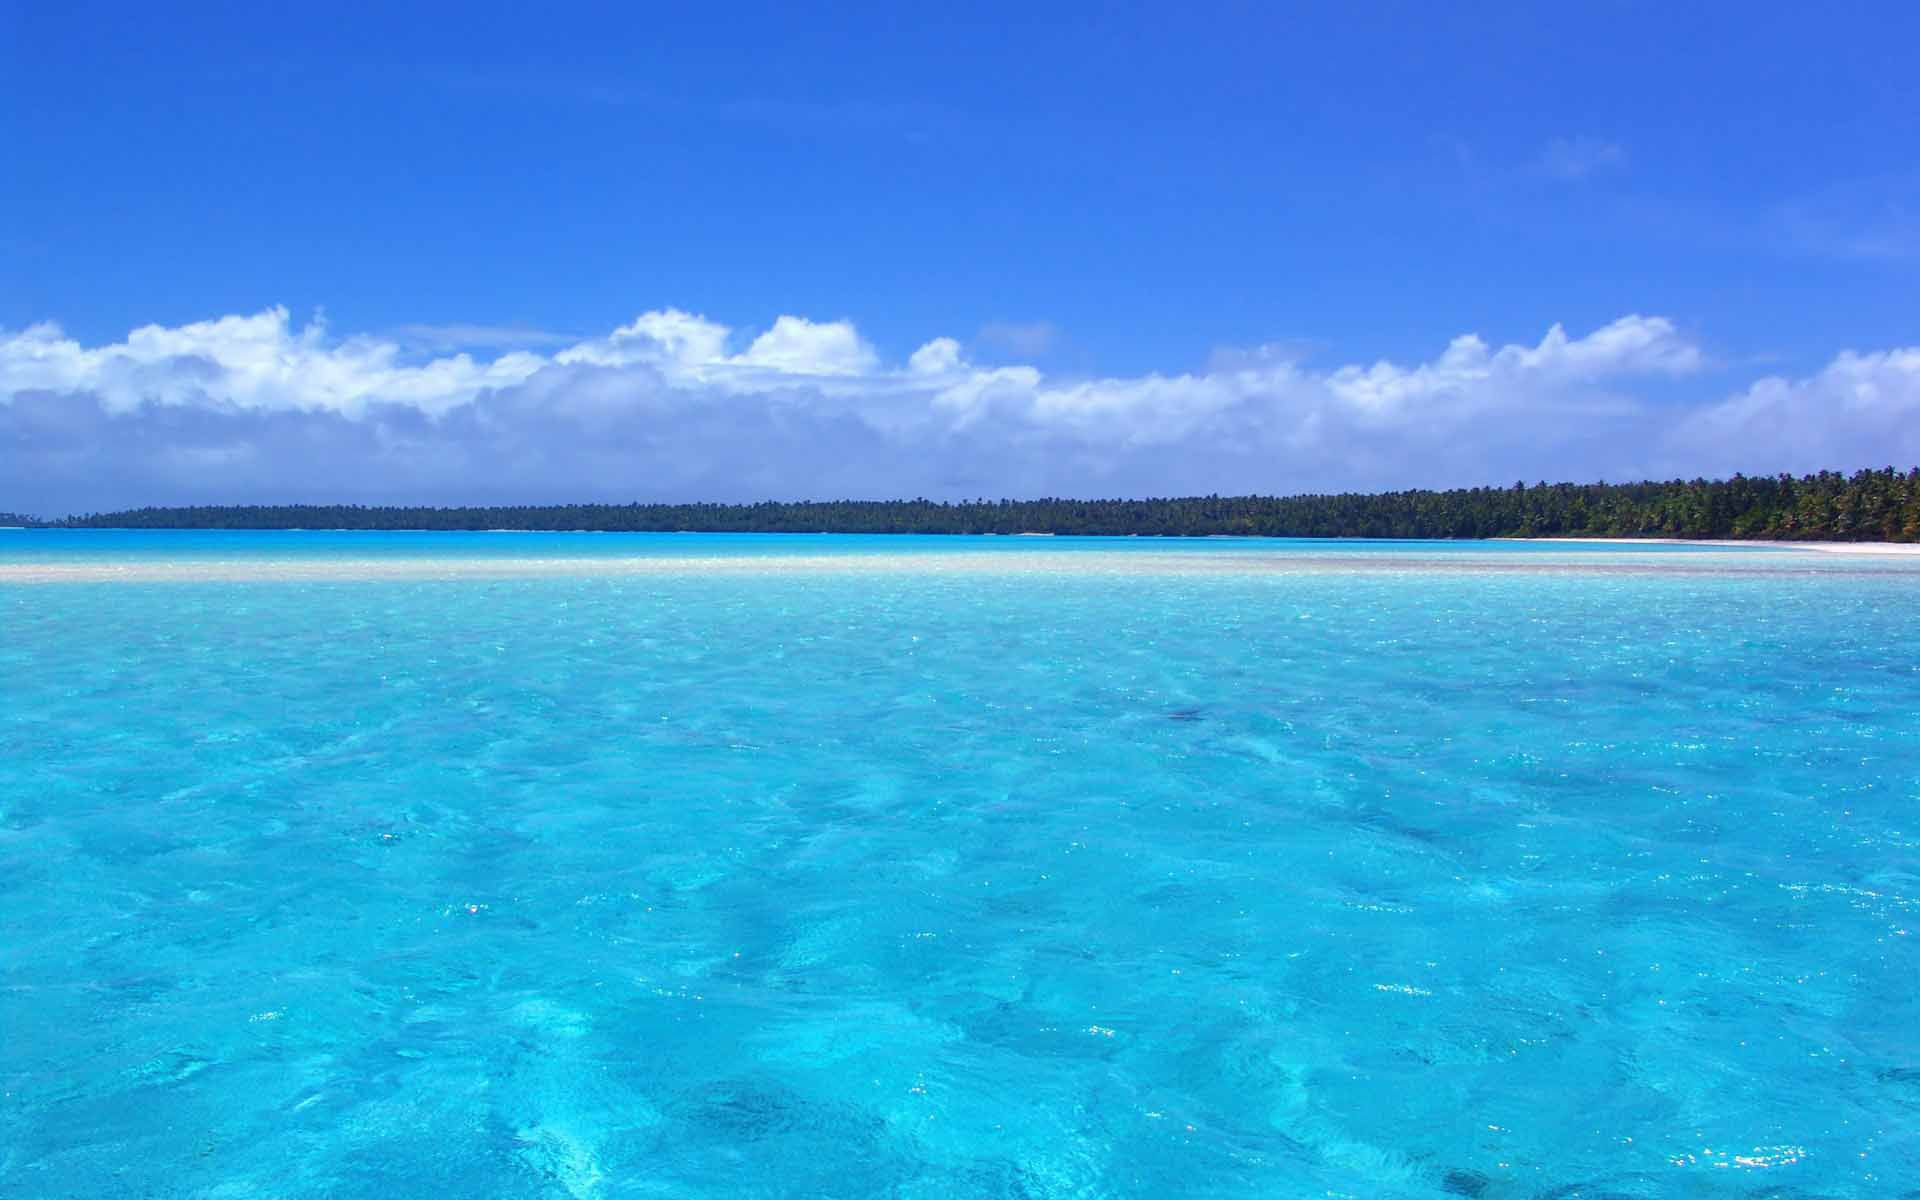 Turquoise Sea Images